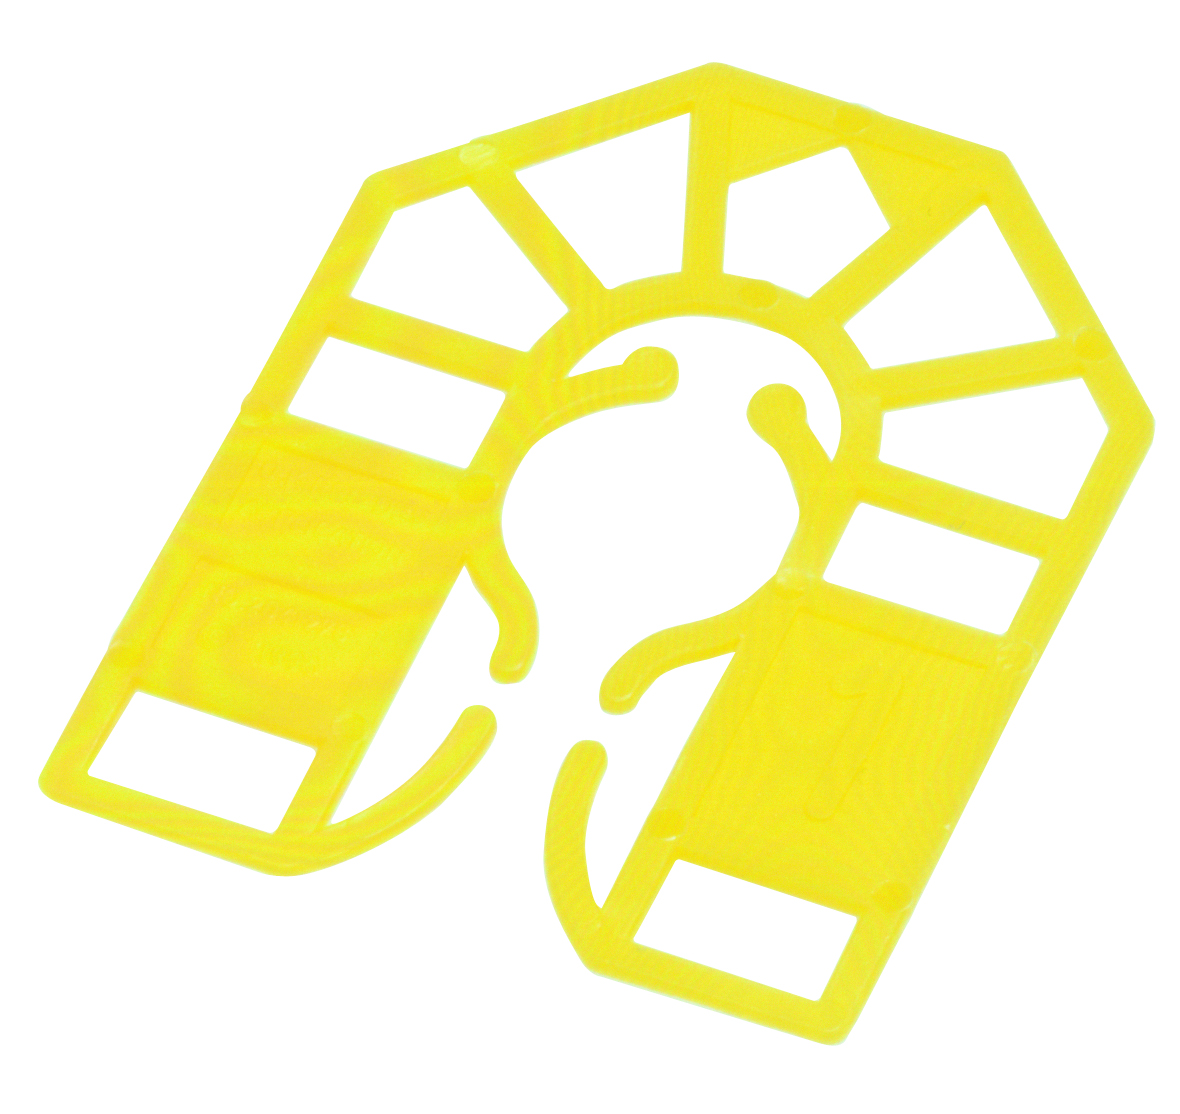 55 x 43 x 1mm Plastic Packing U Shim Yellow